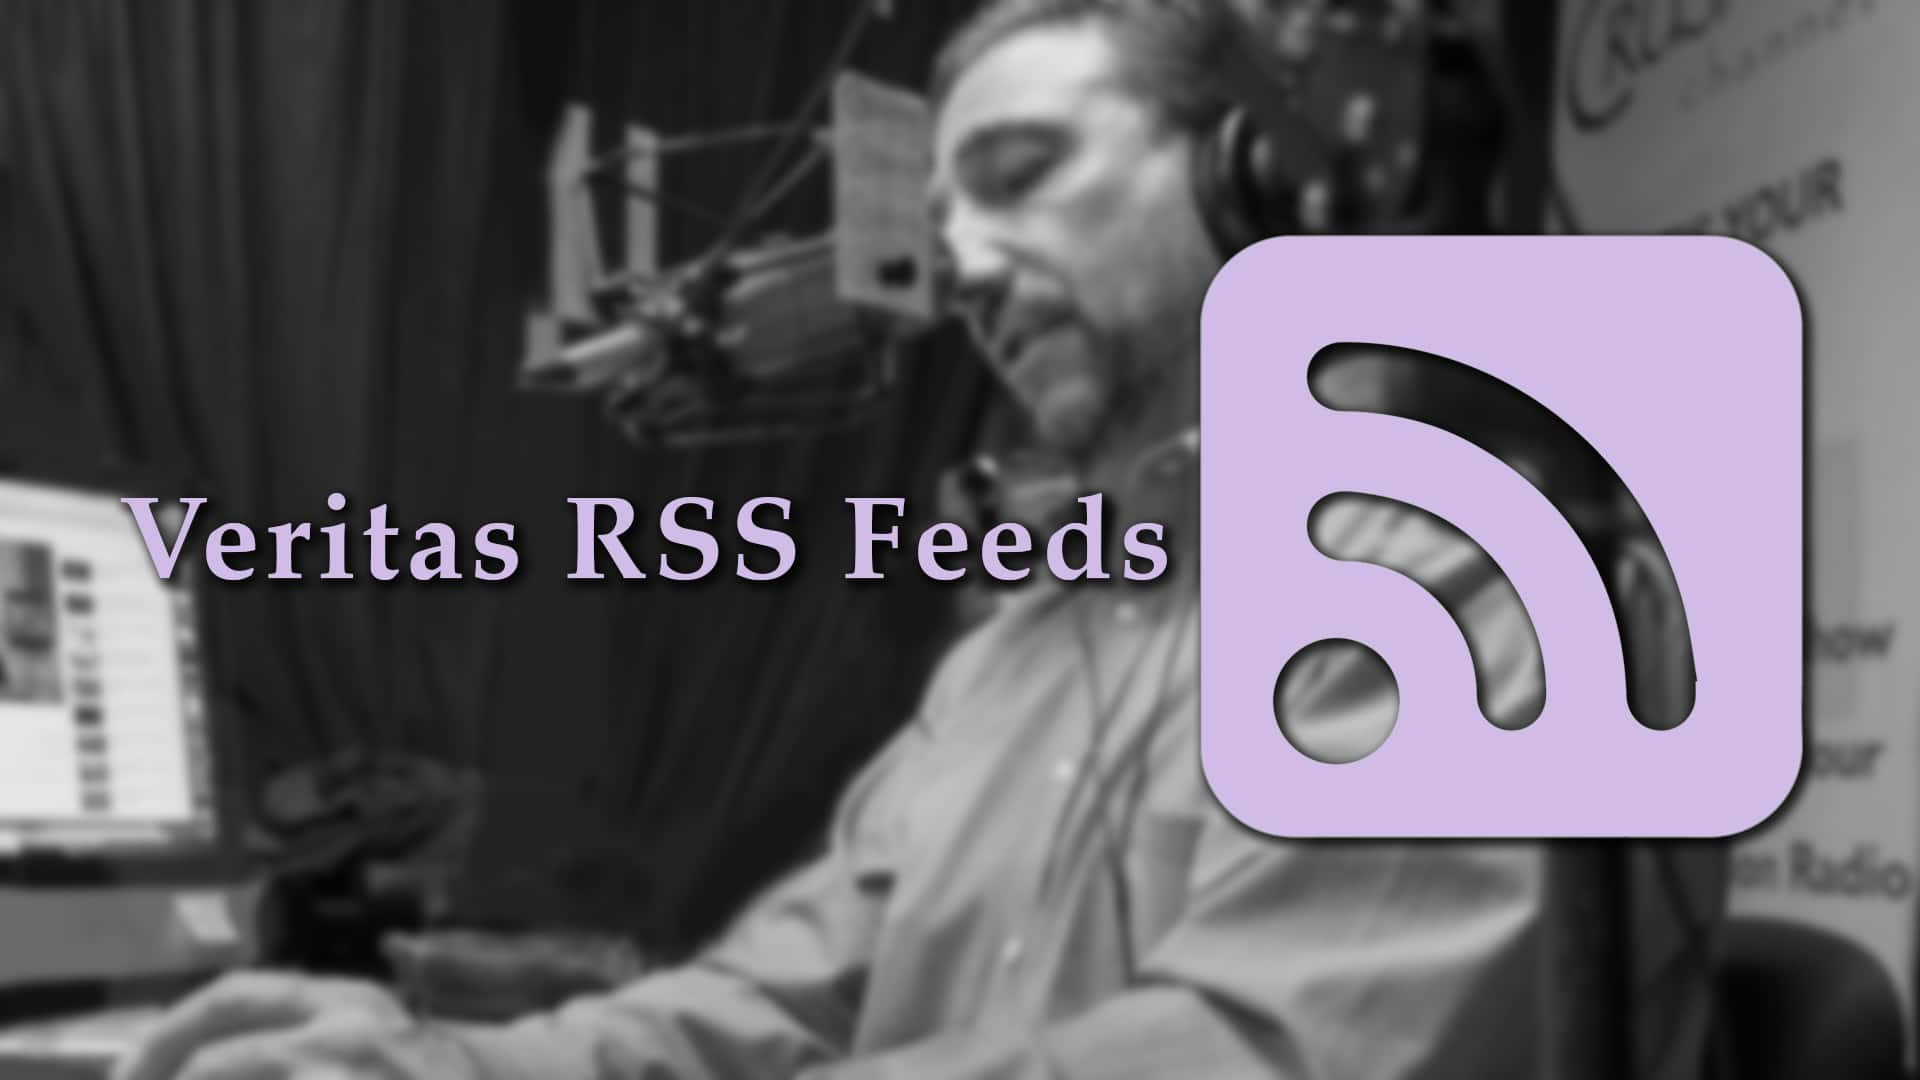 How To Download All 3 Mike Church Show Segments via The New RSS Feeds